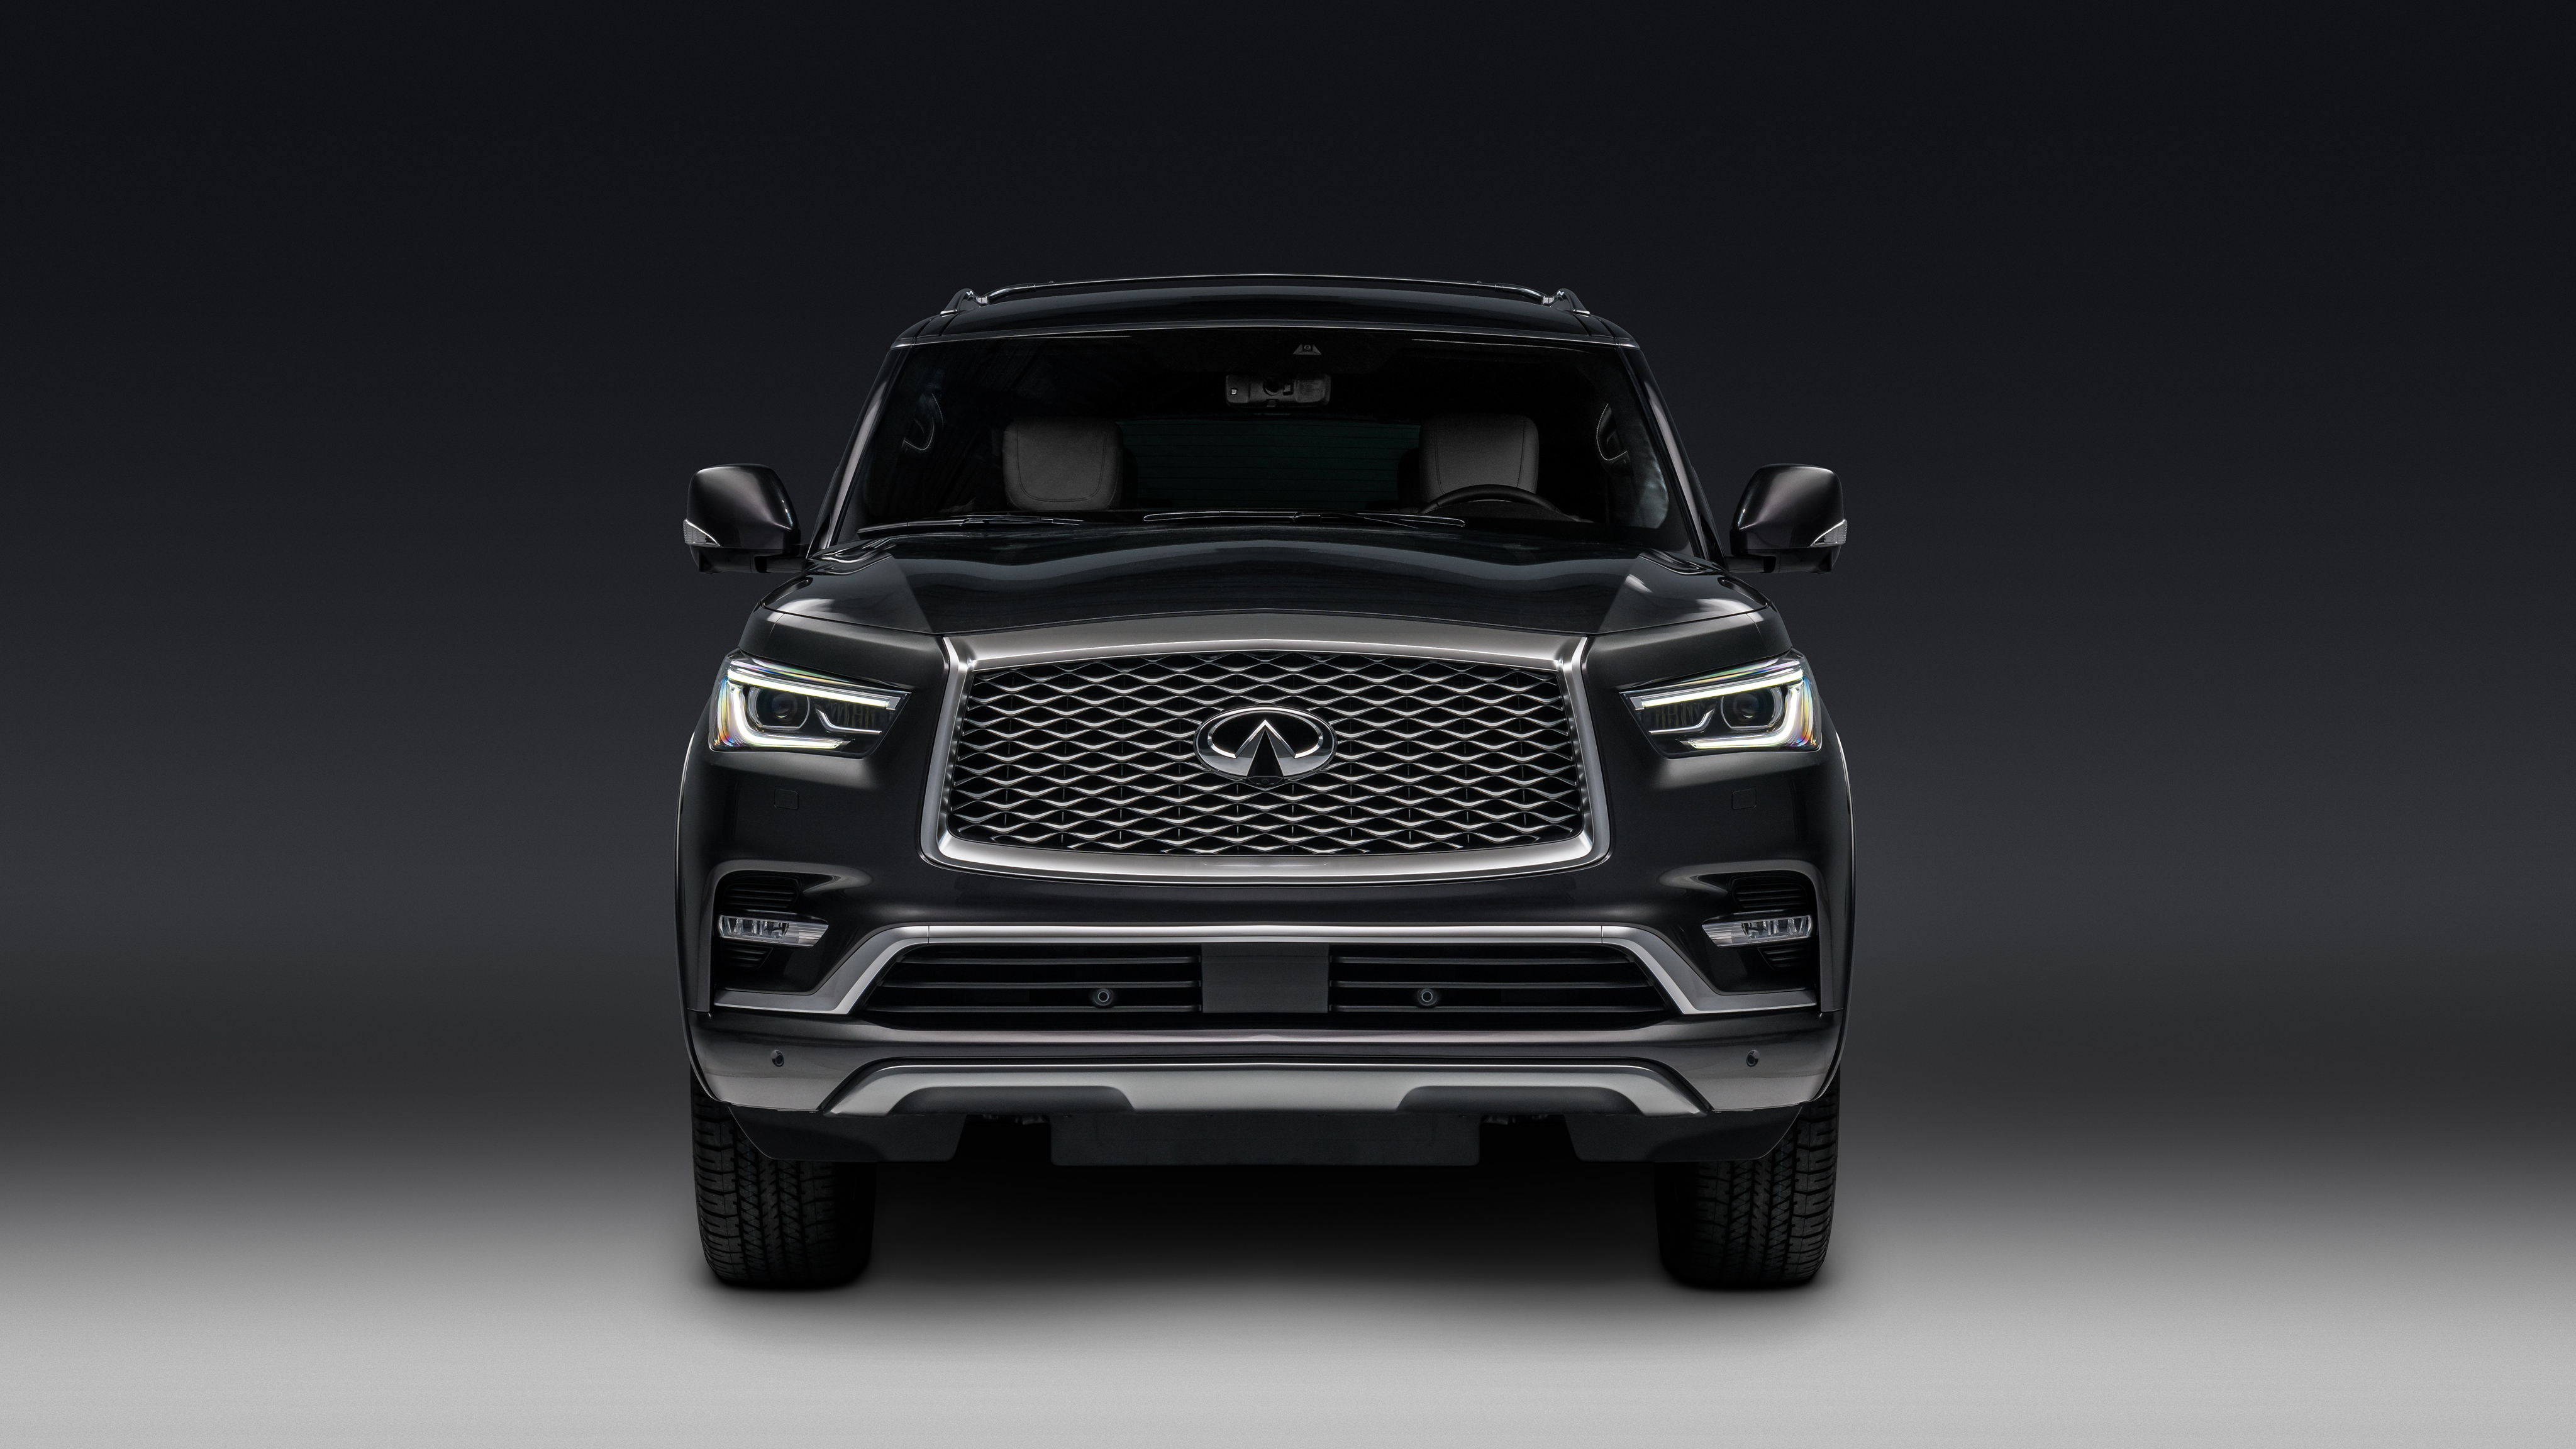 4096x2304 - Infiniti QX80 Wallpapers 13